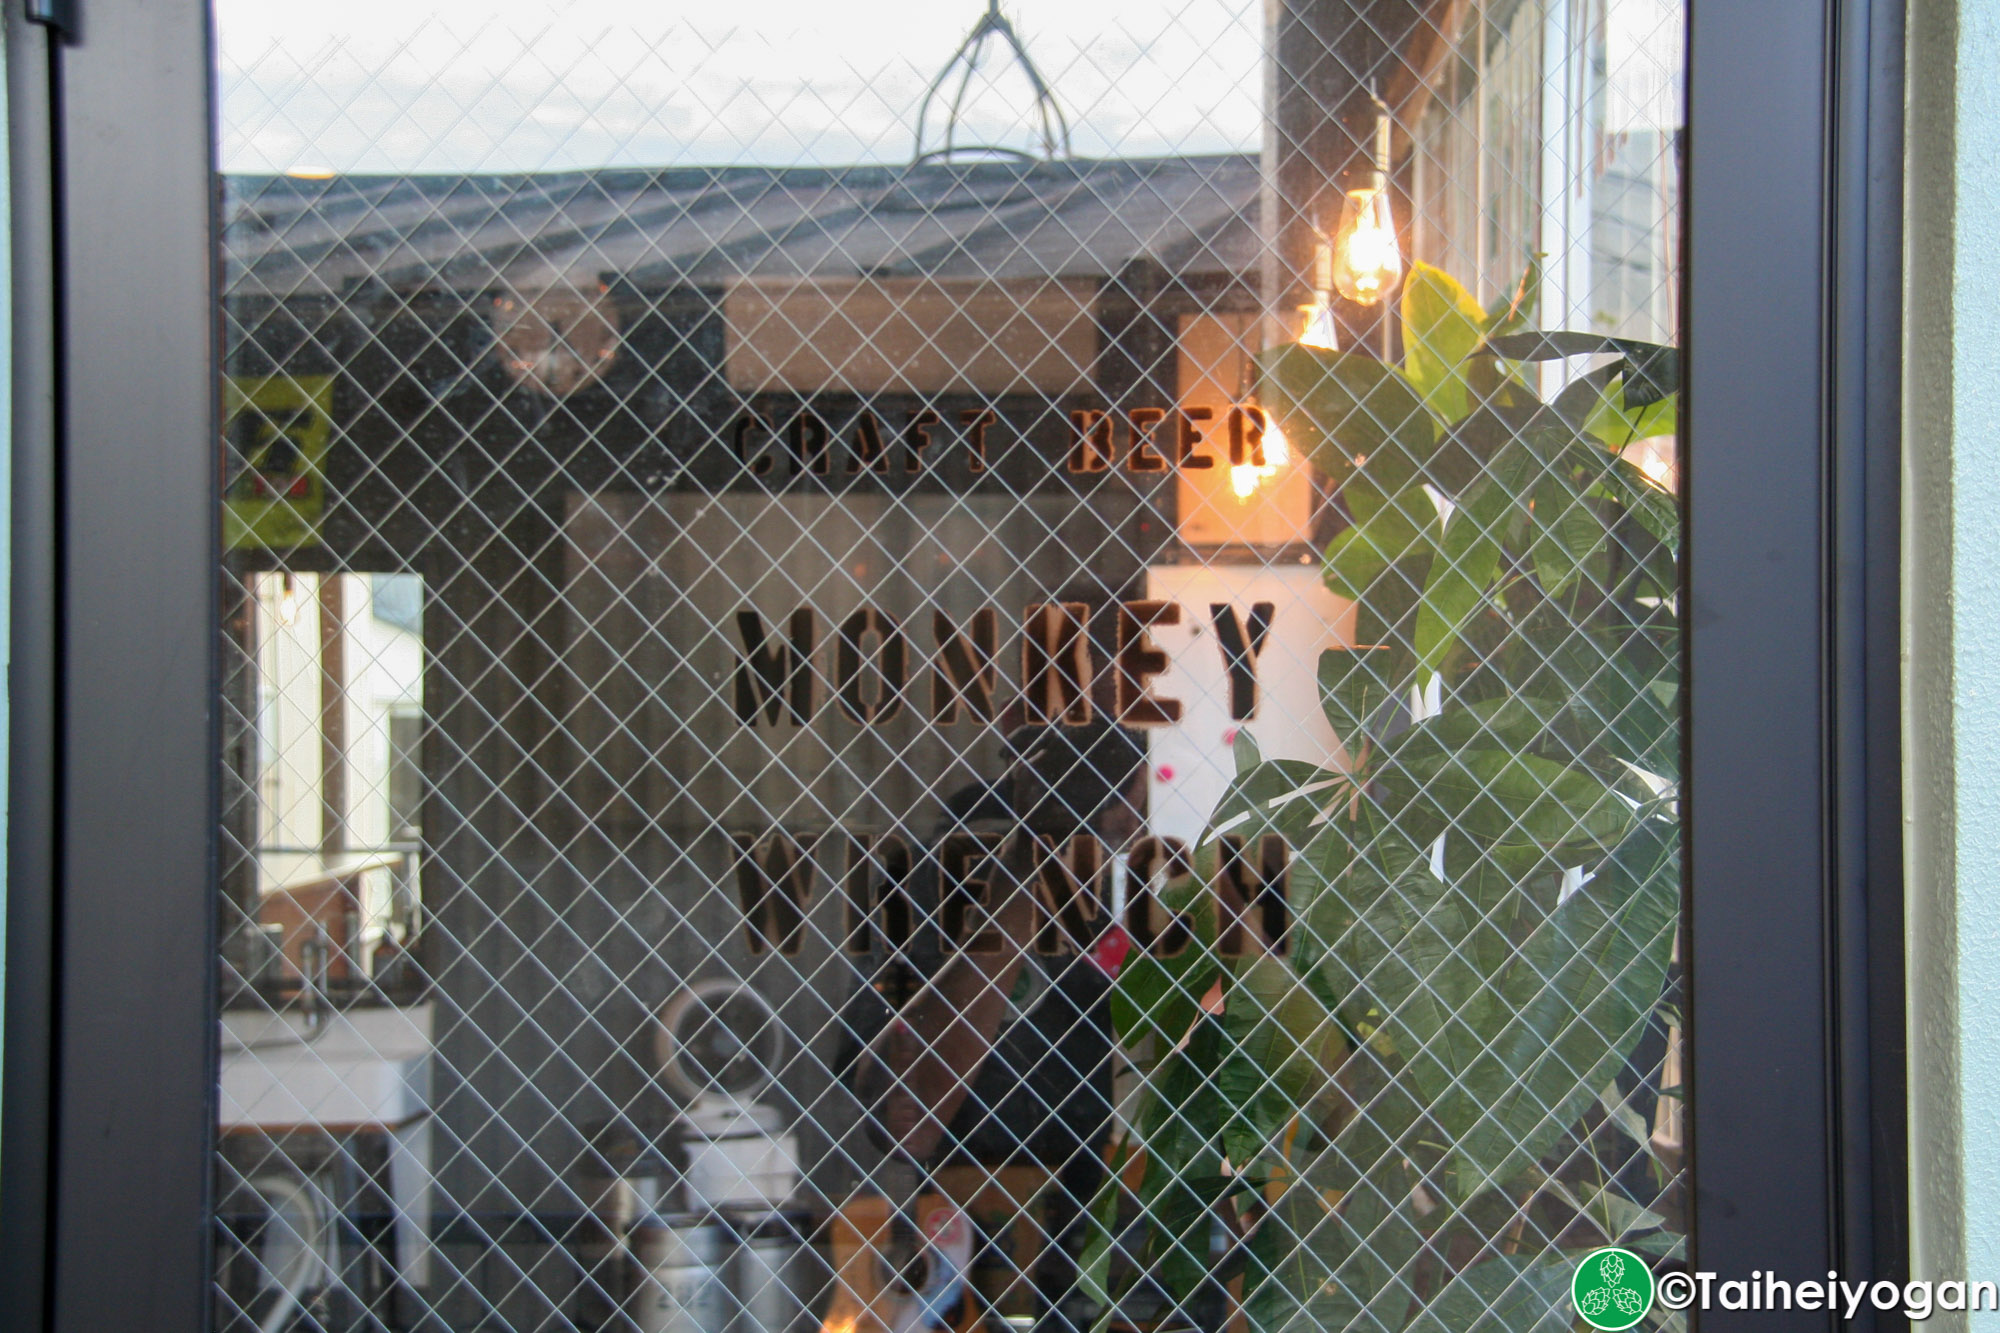 Monkey Wrench - Entrance - Sign